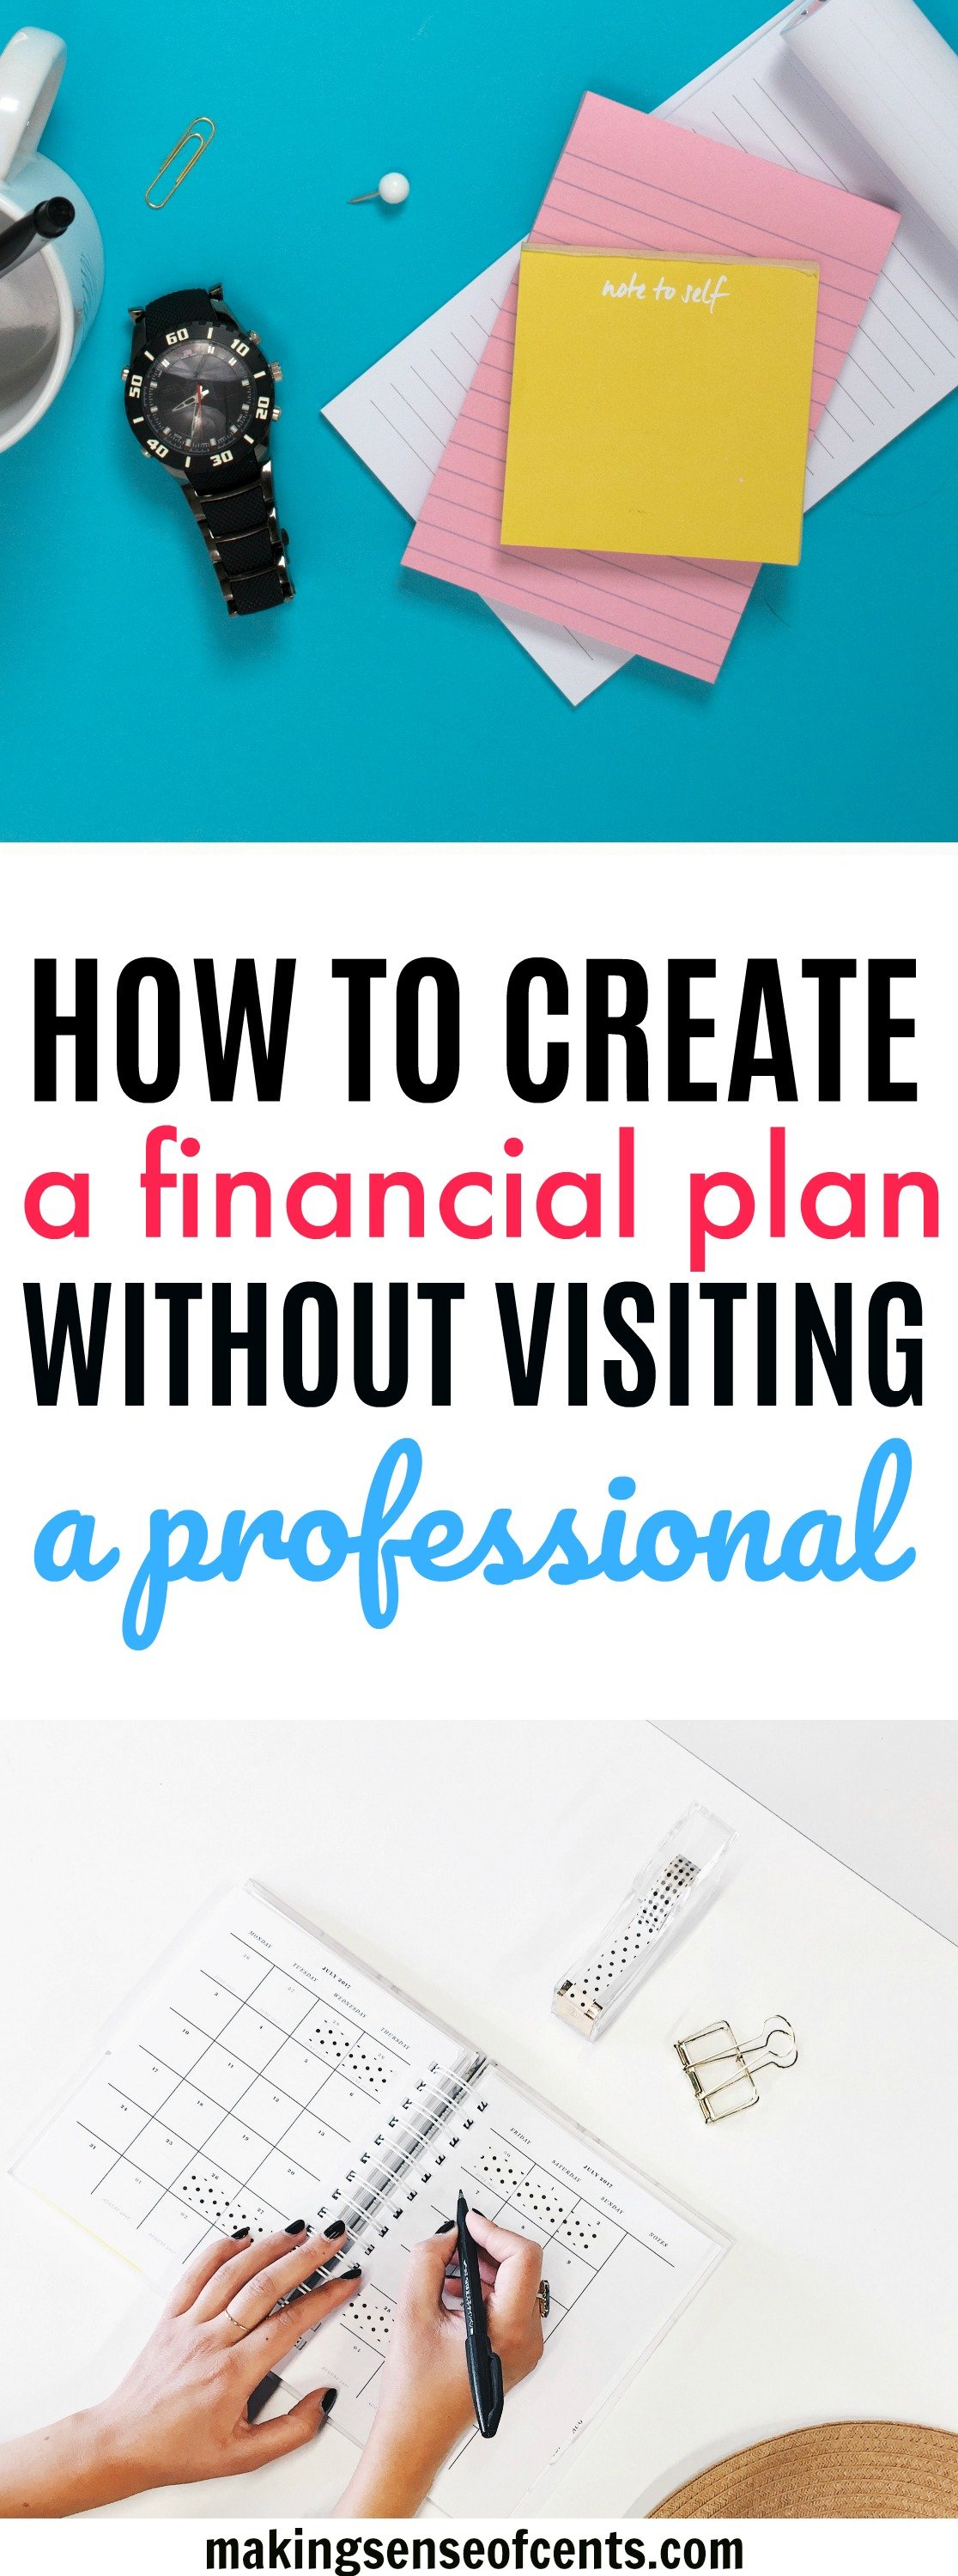 how to come up with a financial plan without visiting a professional